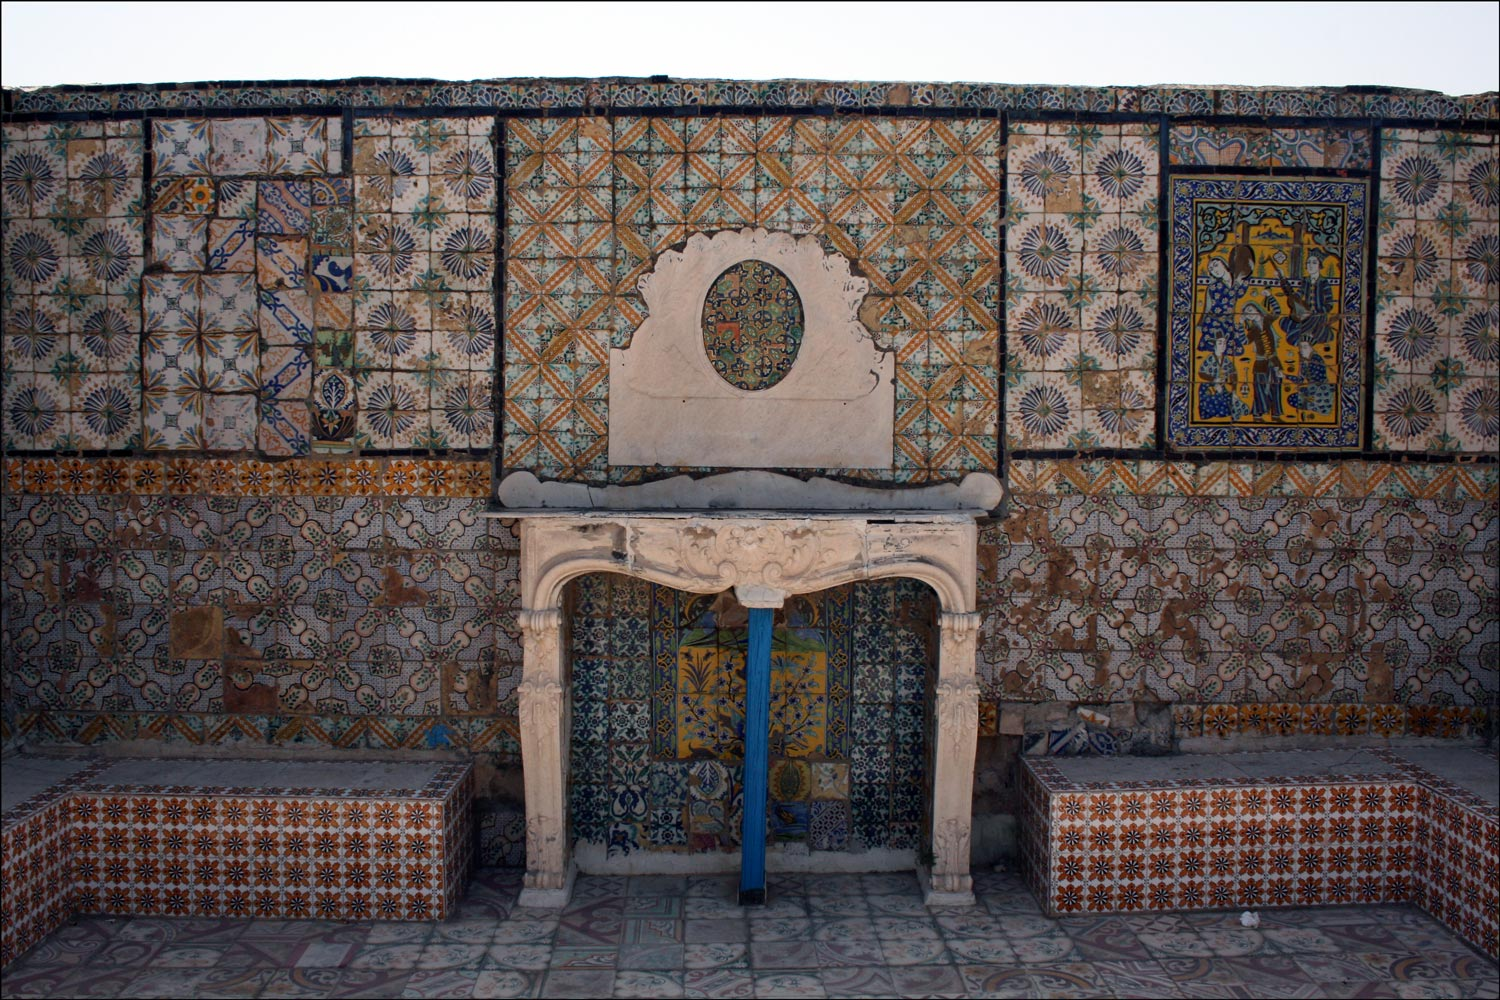 Tiled Rooftop in the Medina